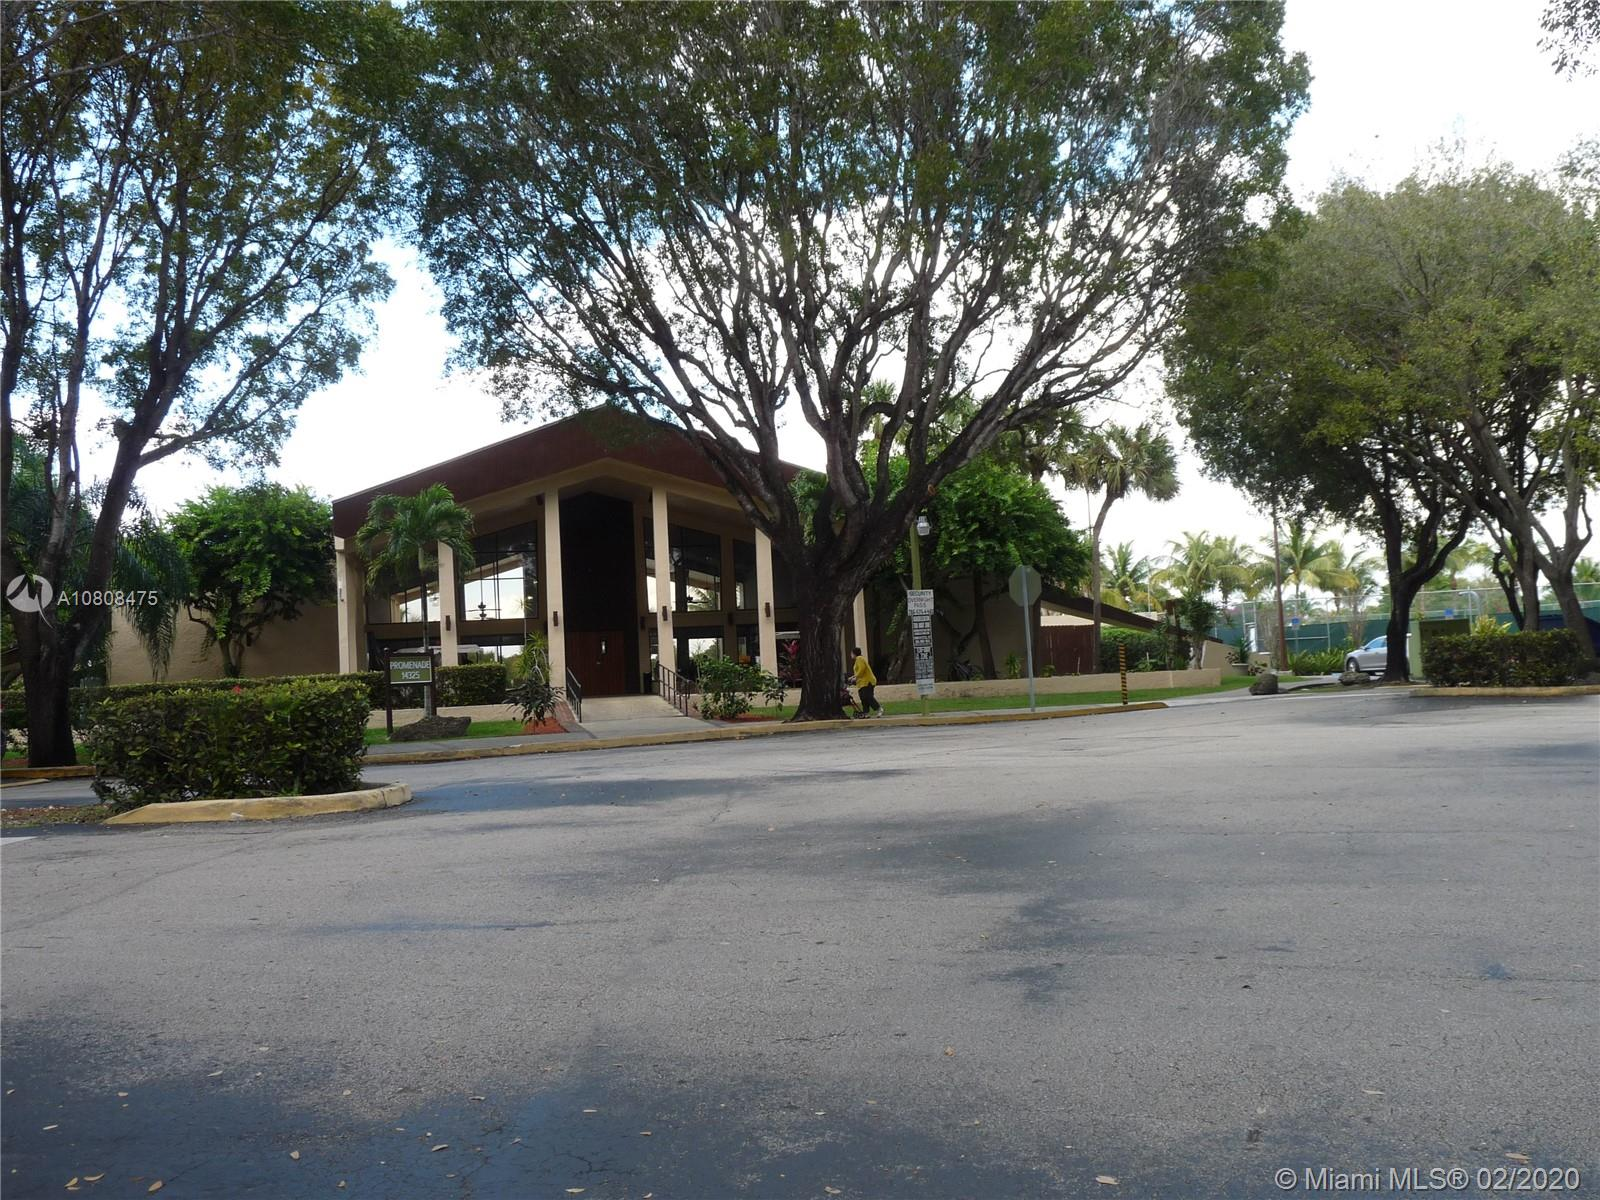 ONE OF THE BIGGEST UNIT 2/2 AT PROMENADE , CENTRALLY LOCATED , CLOSE TO RESTAURANTS, SCHOOLS, AND THE FL TURNPIKE. NICE SIZE ROOMS, EXCELLENT FLOOR PLAN. 2 DOORS ENTRANCE IS A PLUS.  GREAT FOR INVESTORS. BY APPOINTMENTS ONLY..